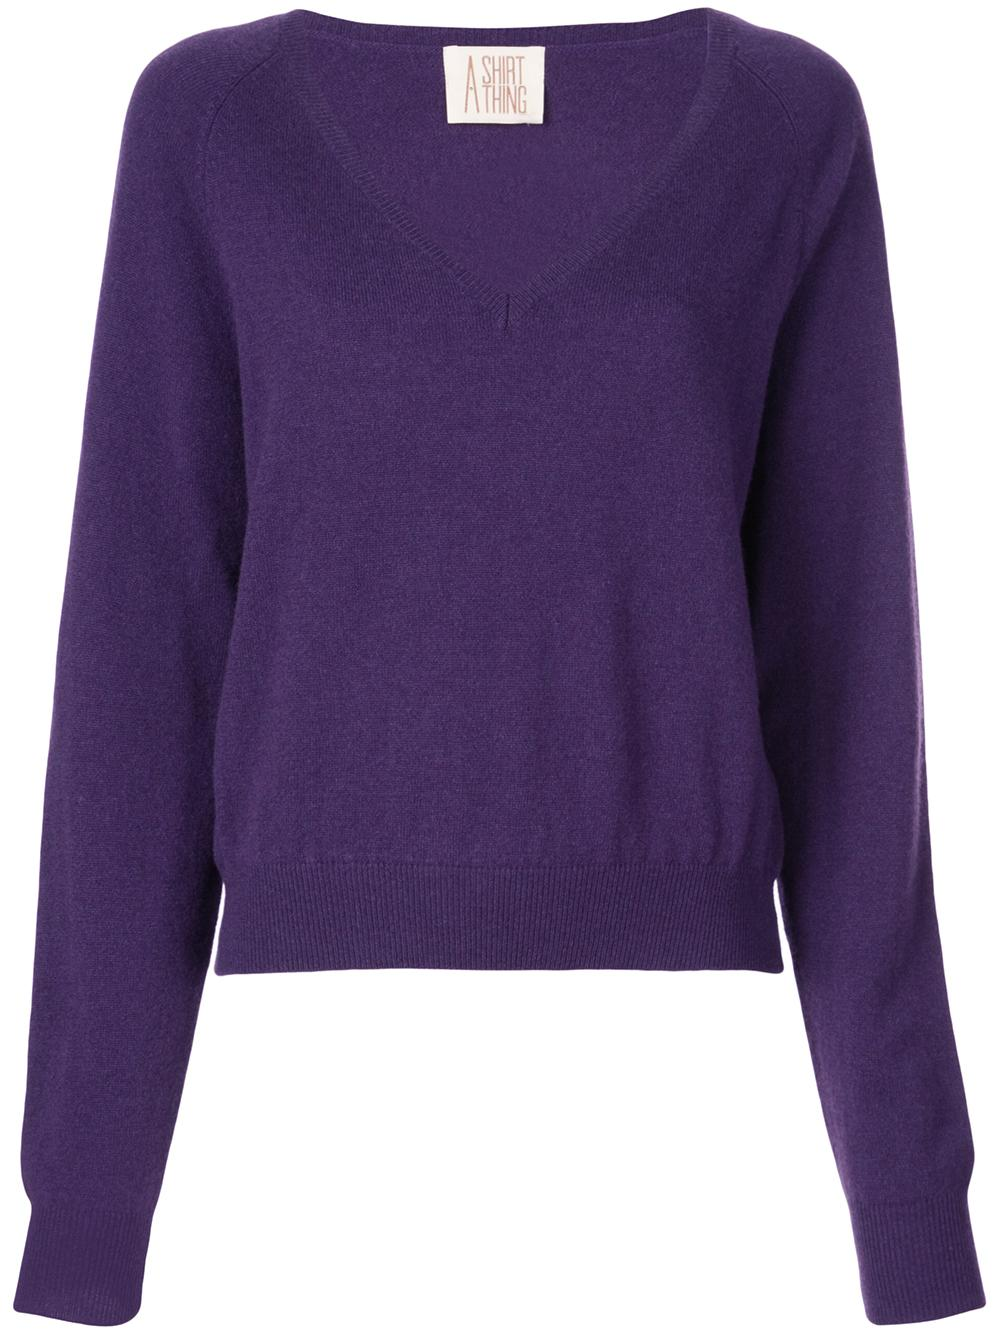 The Girlfriend Vee Neck Cashmere Sweater